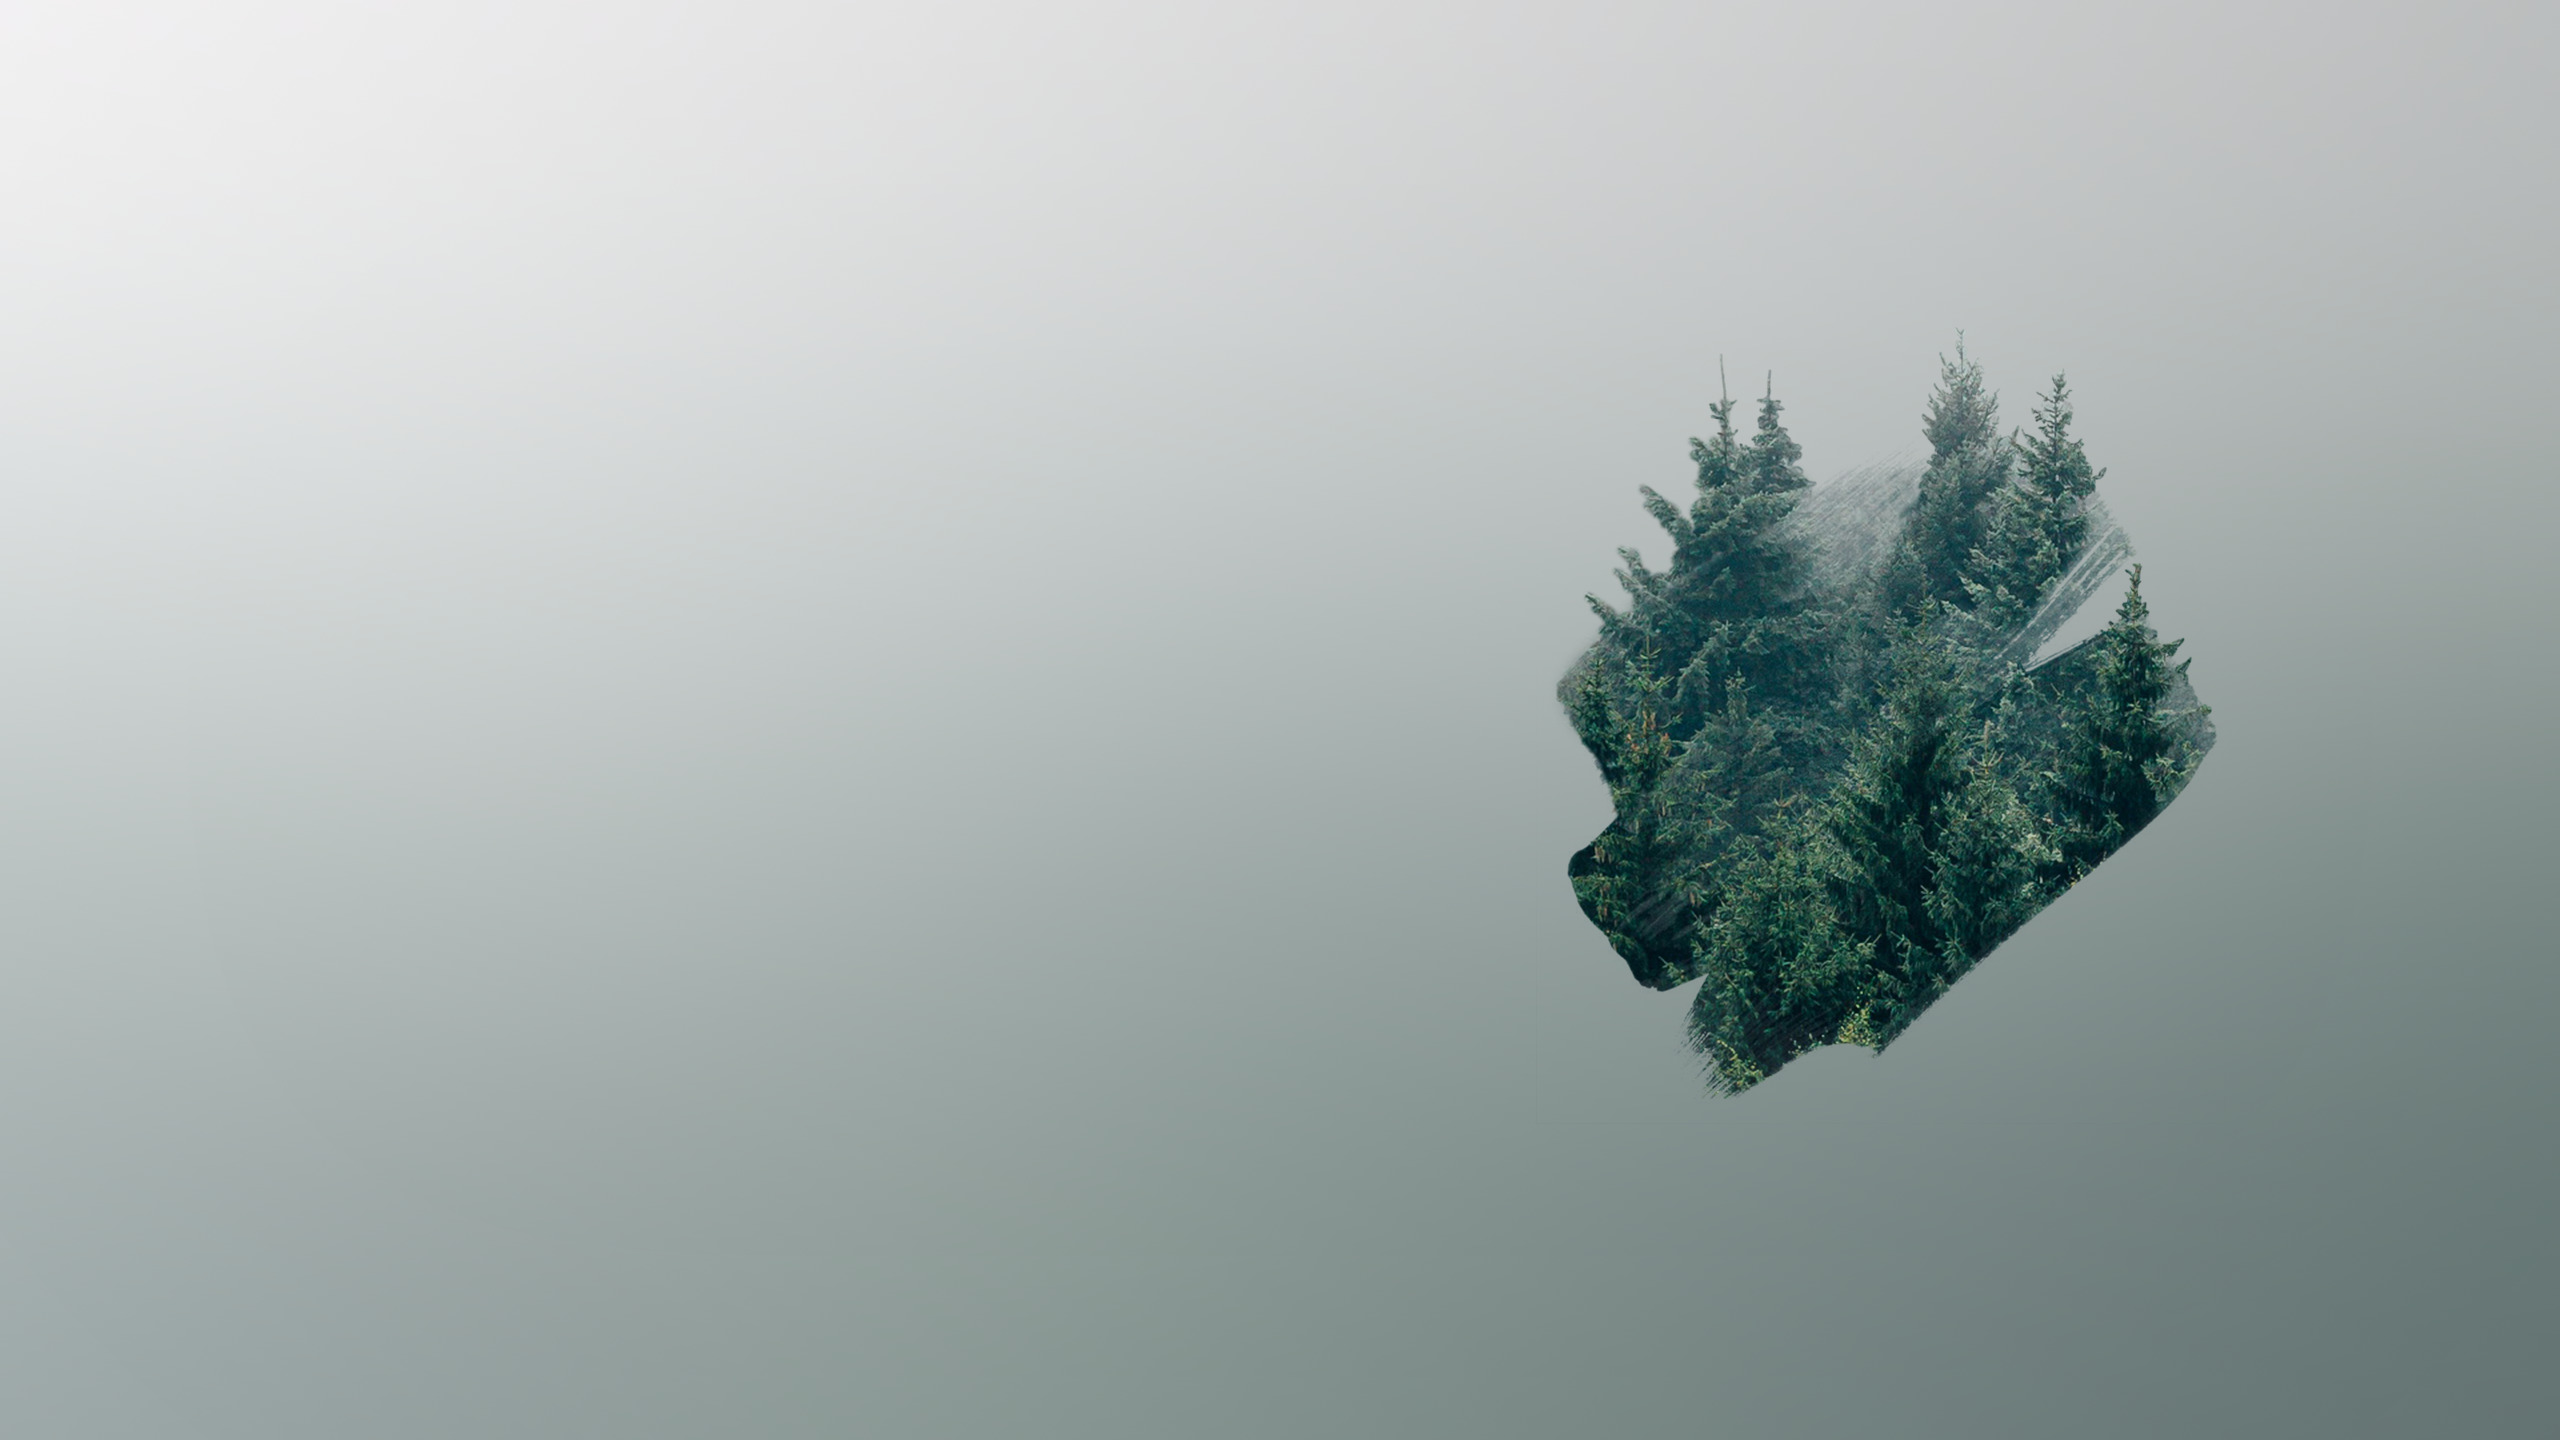 minimalist forest [2560x1440] : wallpapers